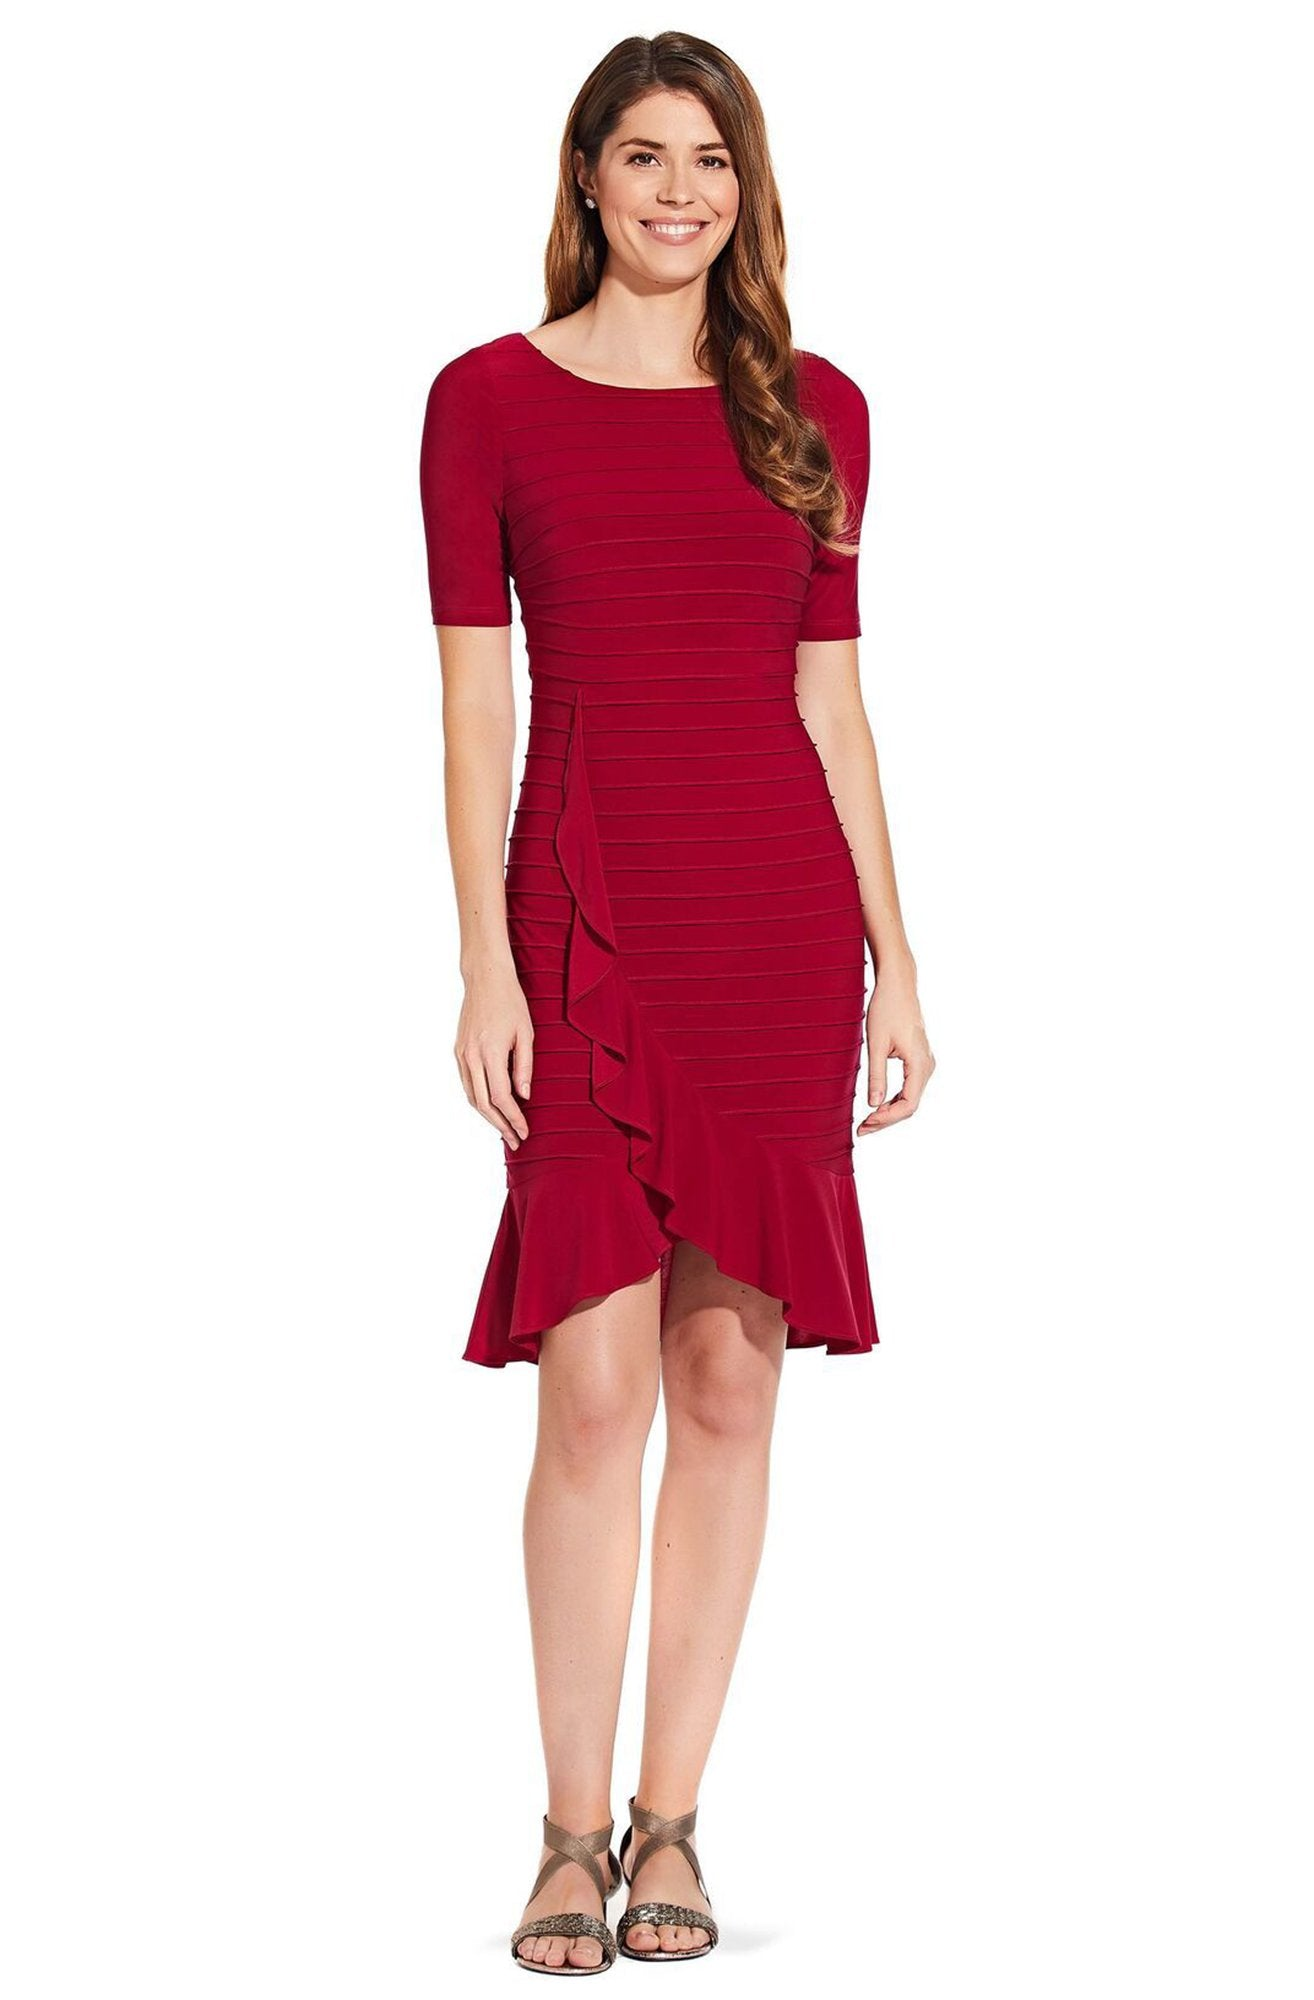 Adrianna Papell - AP1D103506 Bateau Ribbed Jersey Sheath Dress In Red